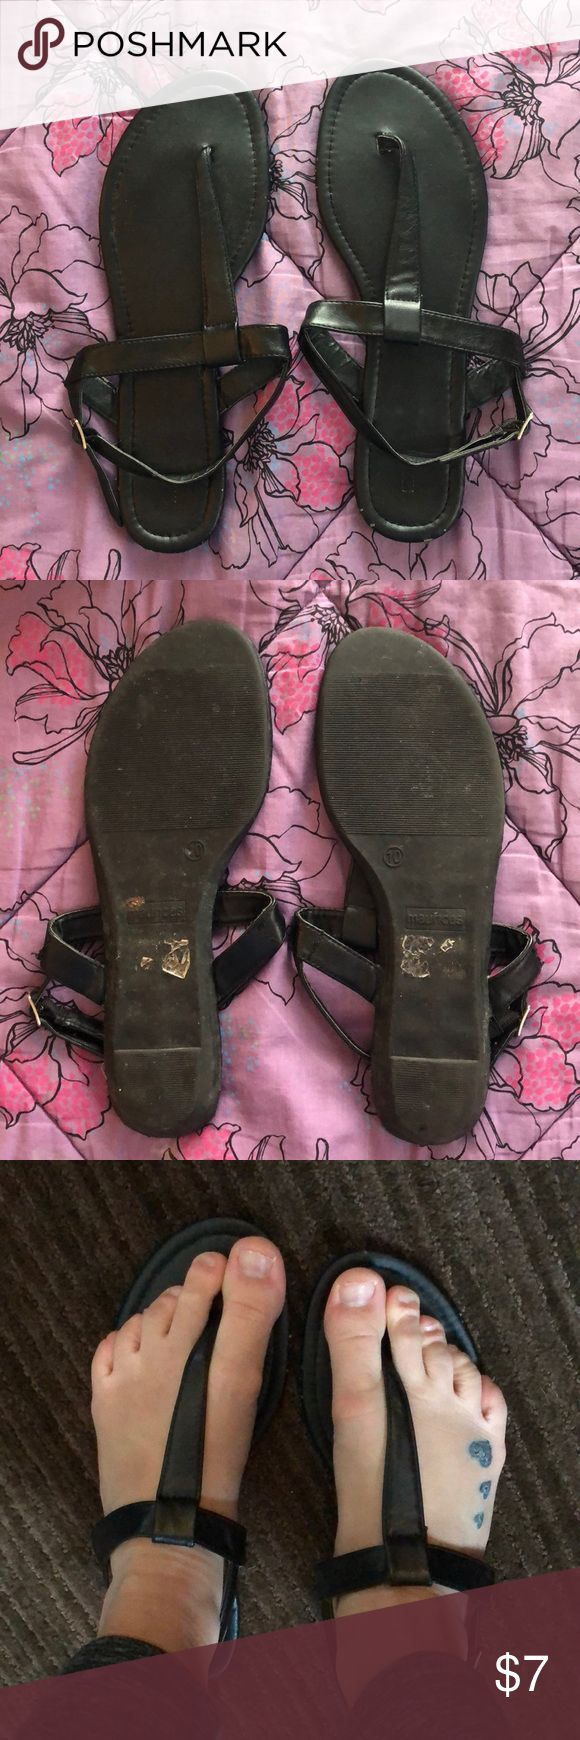 Maurices Black sandals Maurices brand black sandals, size 10. Worn condition but still lots of miles left. Great shoes, a few scuffs shown in pictures. Maurices Shoes Sandals